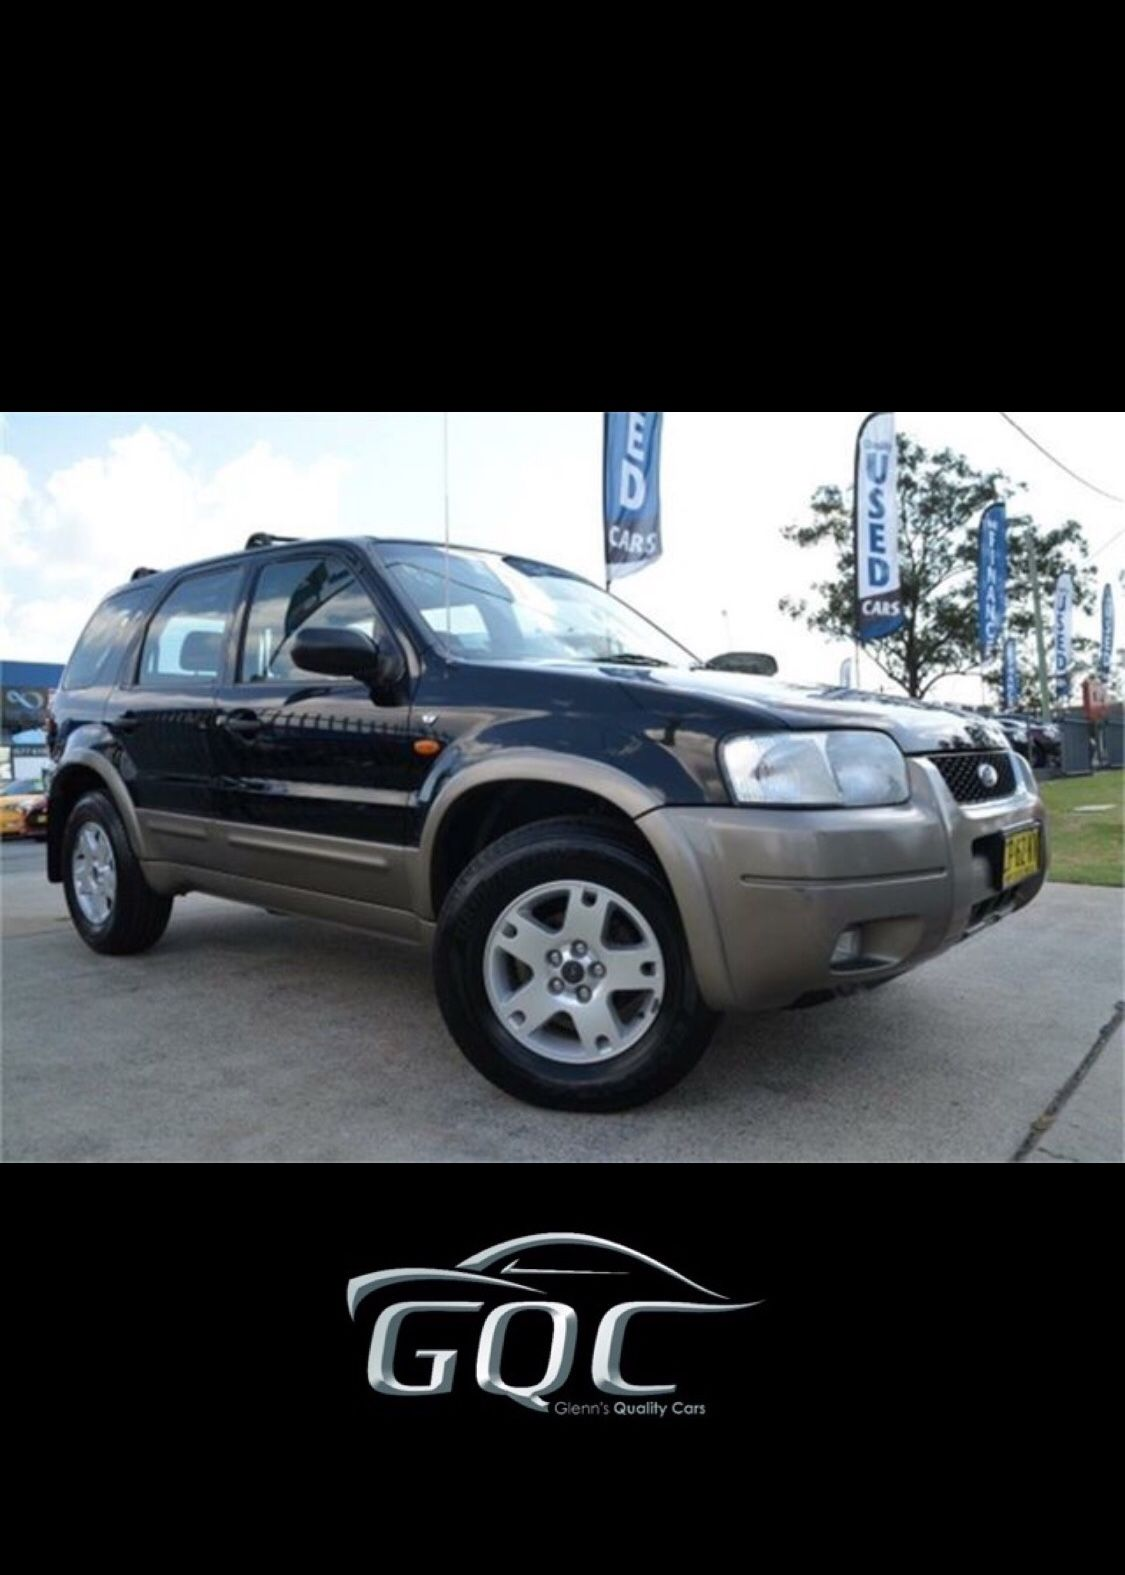 2005 Ford Escape Xlt Wagon 5 999 Ford Escape Xlt Ford